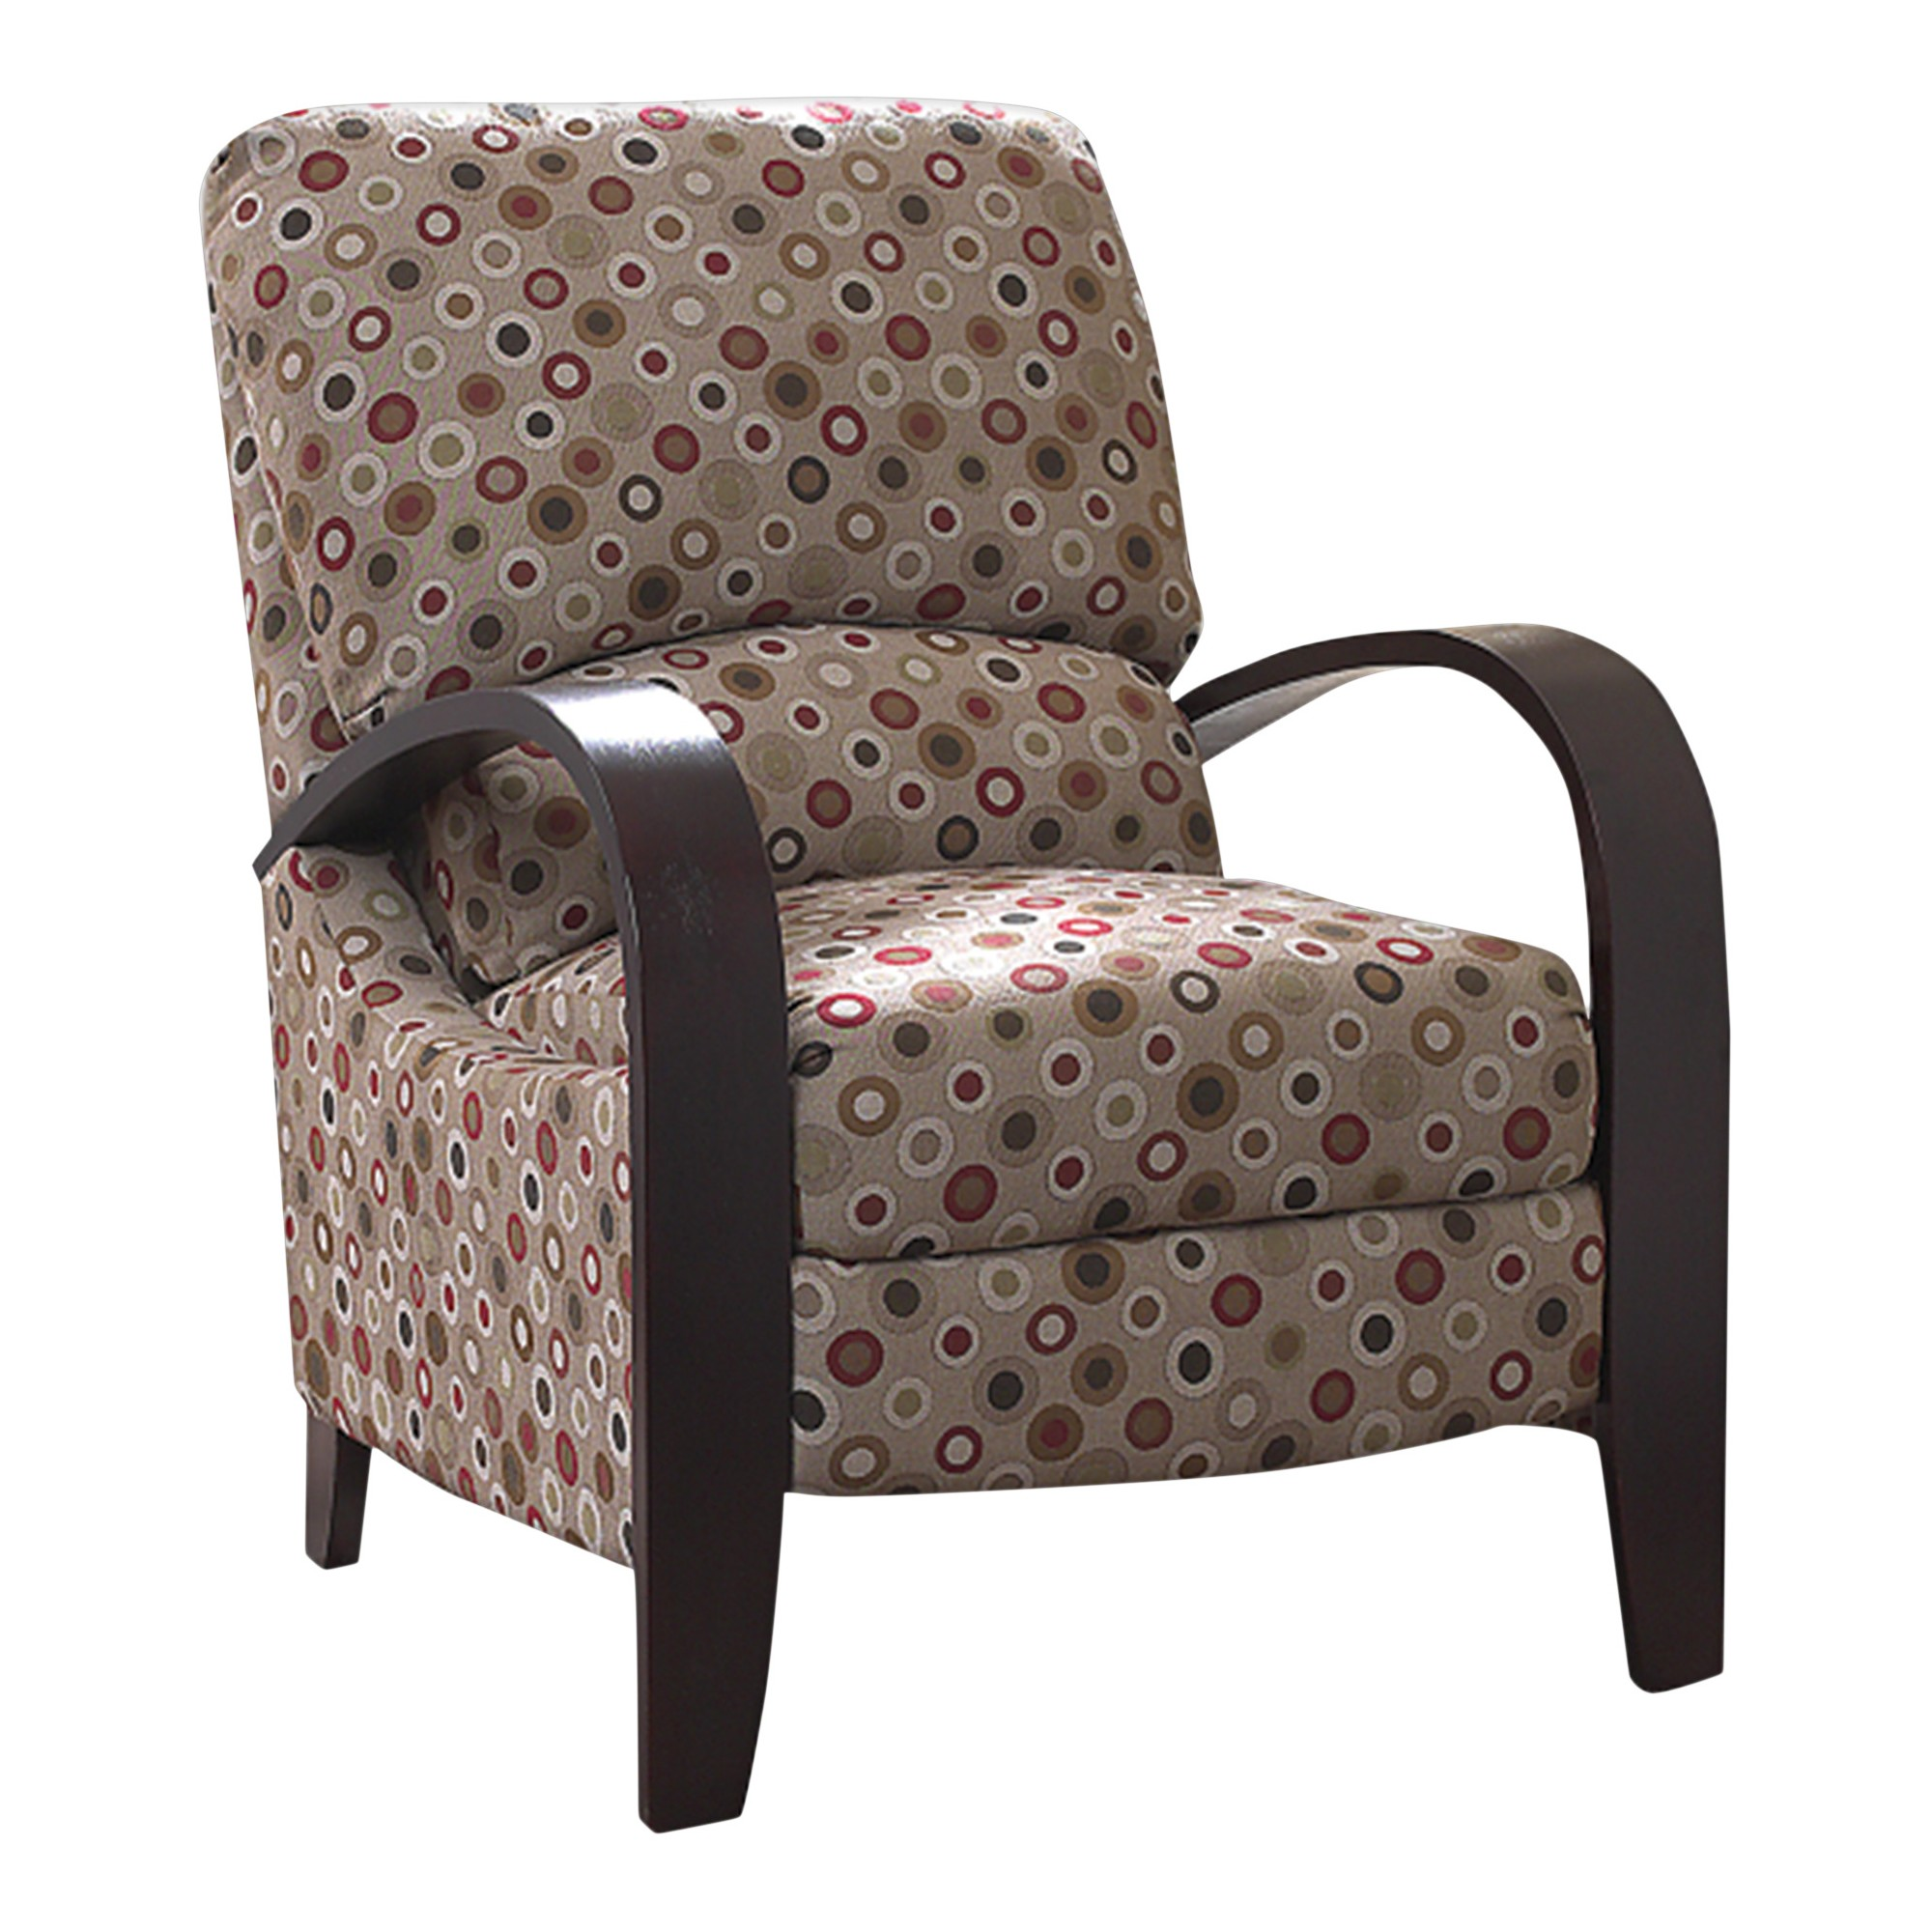 home bent to recliner a in for faux rocker canyon arm chair brown rocking the how of repair quarterback image redesign benchcraft